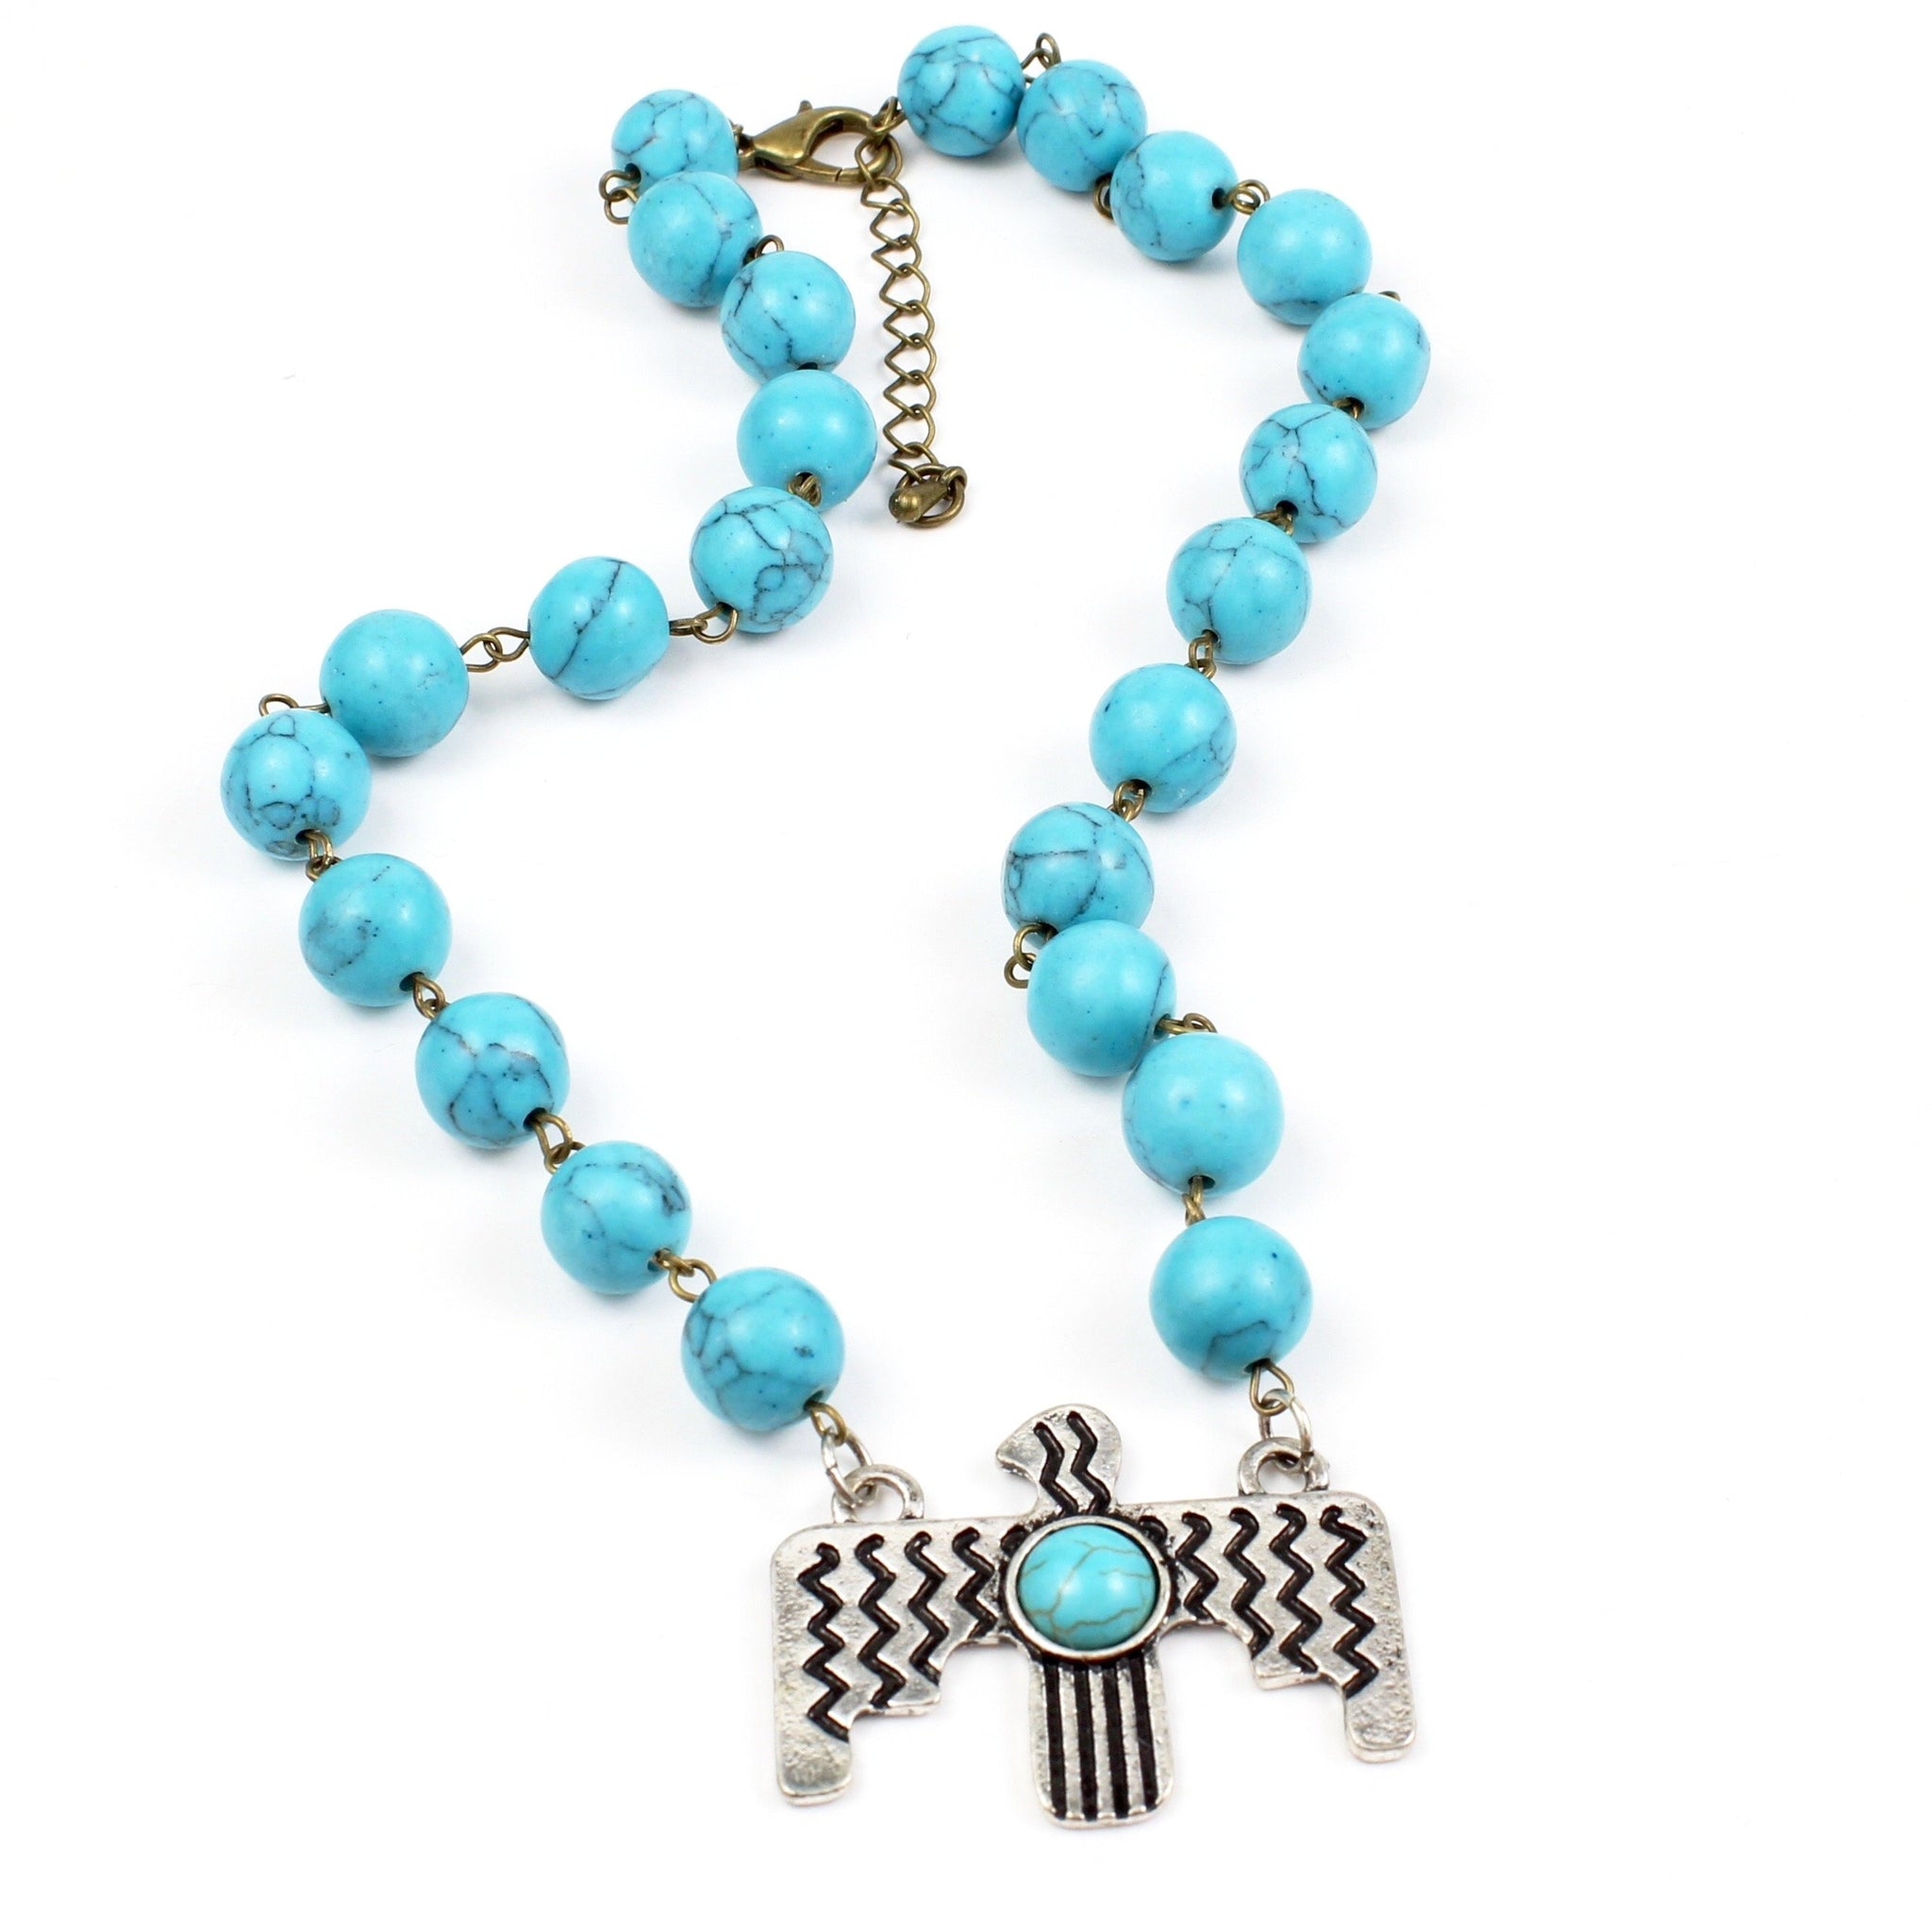 Turquoise Thunderbird Necklace-Beaded Necklaces-Jewelry Gypsy Designs